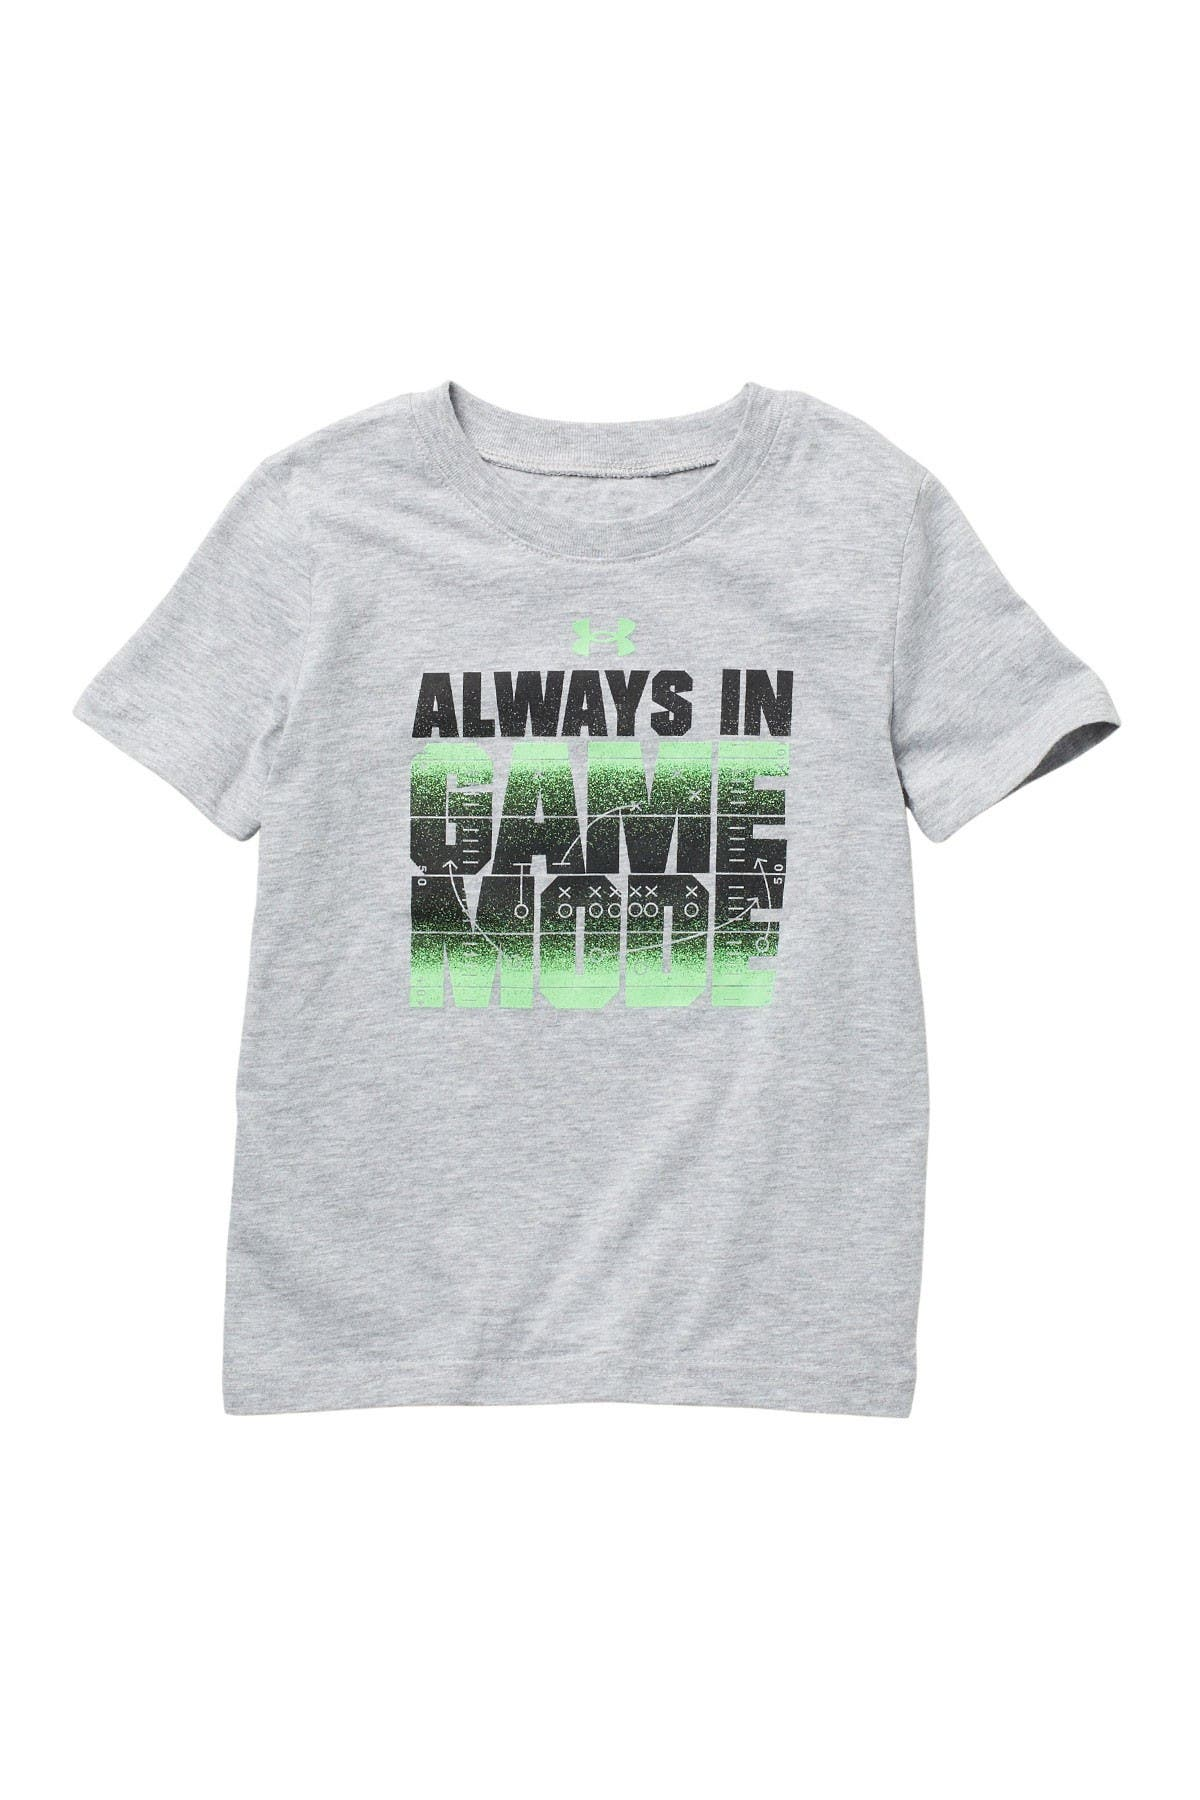 Image of Under Armour Always In Game Mode T-Shirt